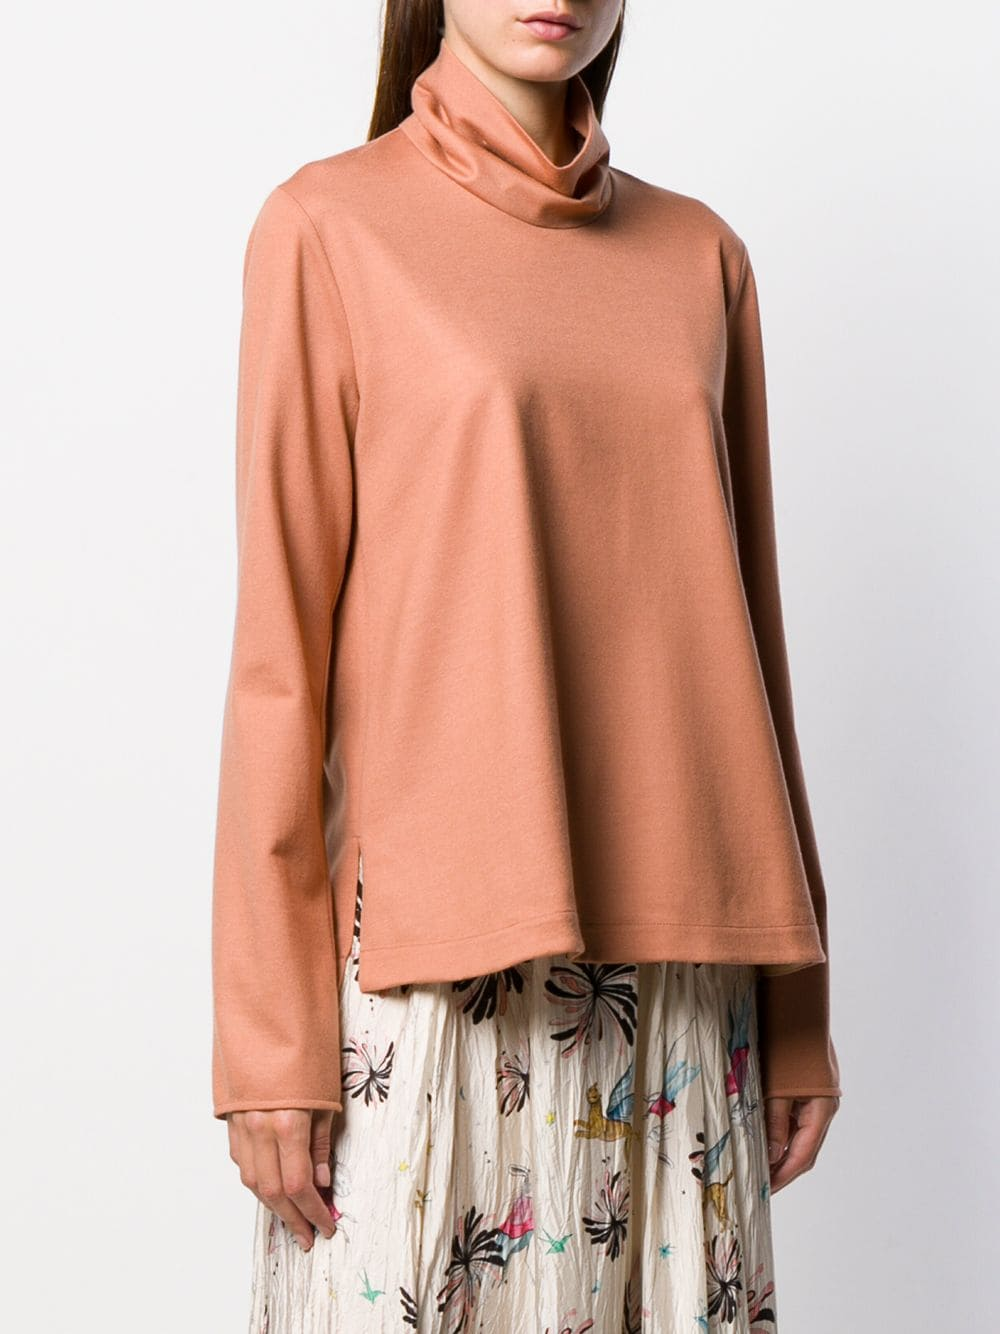 Camel brown virgin wool ruffled-neck sweater  FORTE_FORTE |  | 6740CAMEO